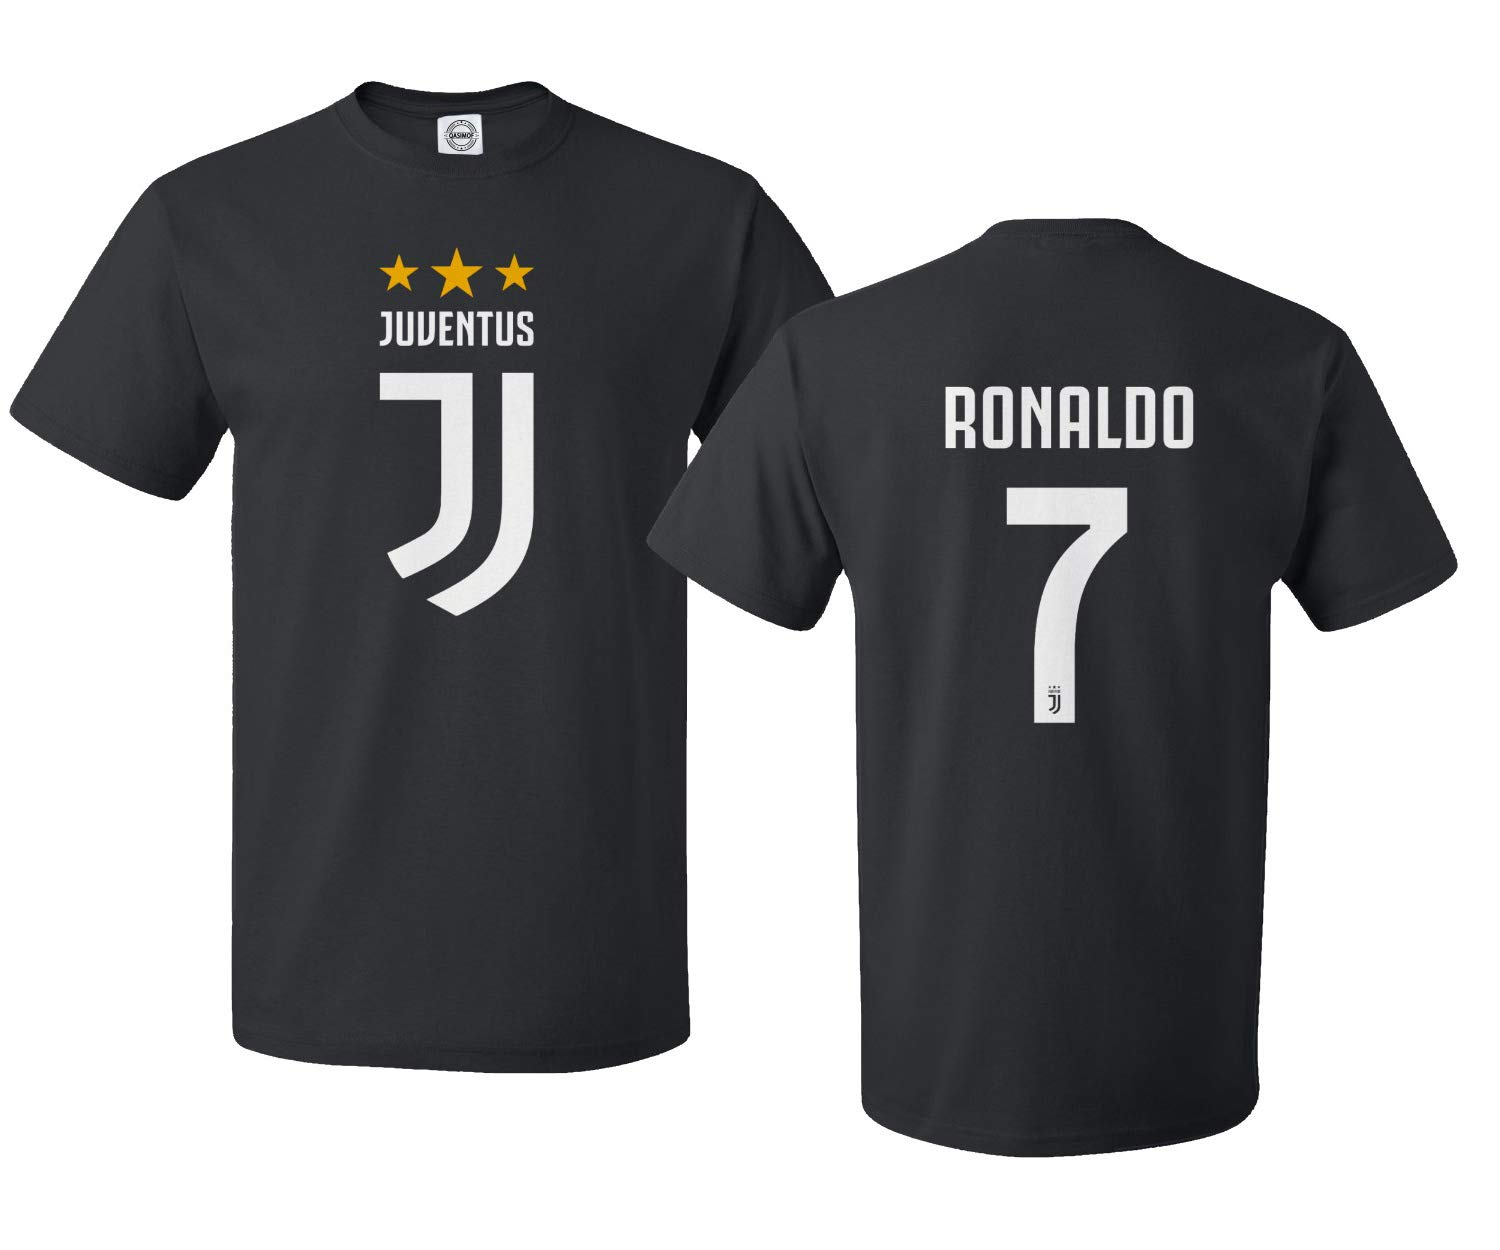 8b502dbd2 Amazon.com   Smart Zone Soccer Shirt Cristiano Ronaldo Men s T- Shirt    Sports   Outdoors